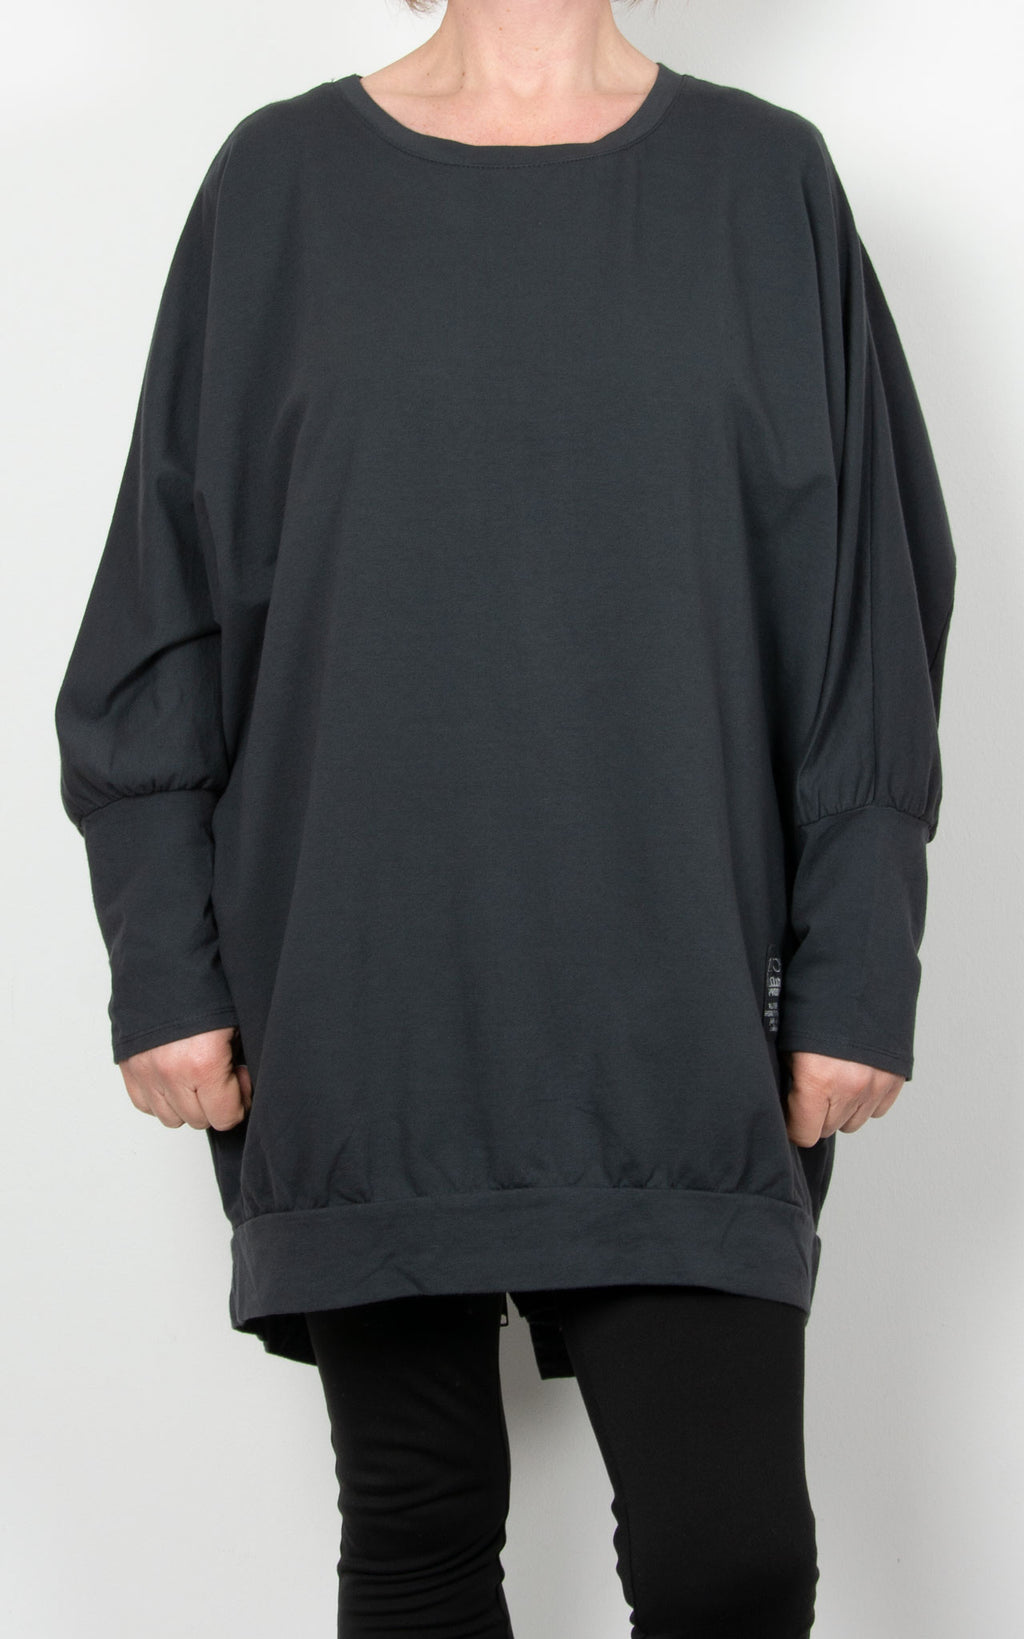 Zippy|Batwing Back Zip |Charcoal